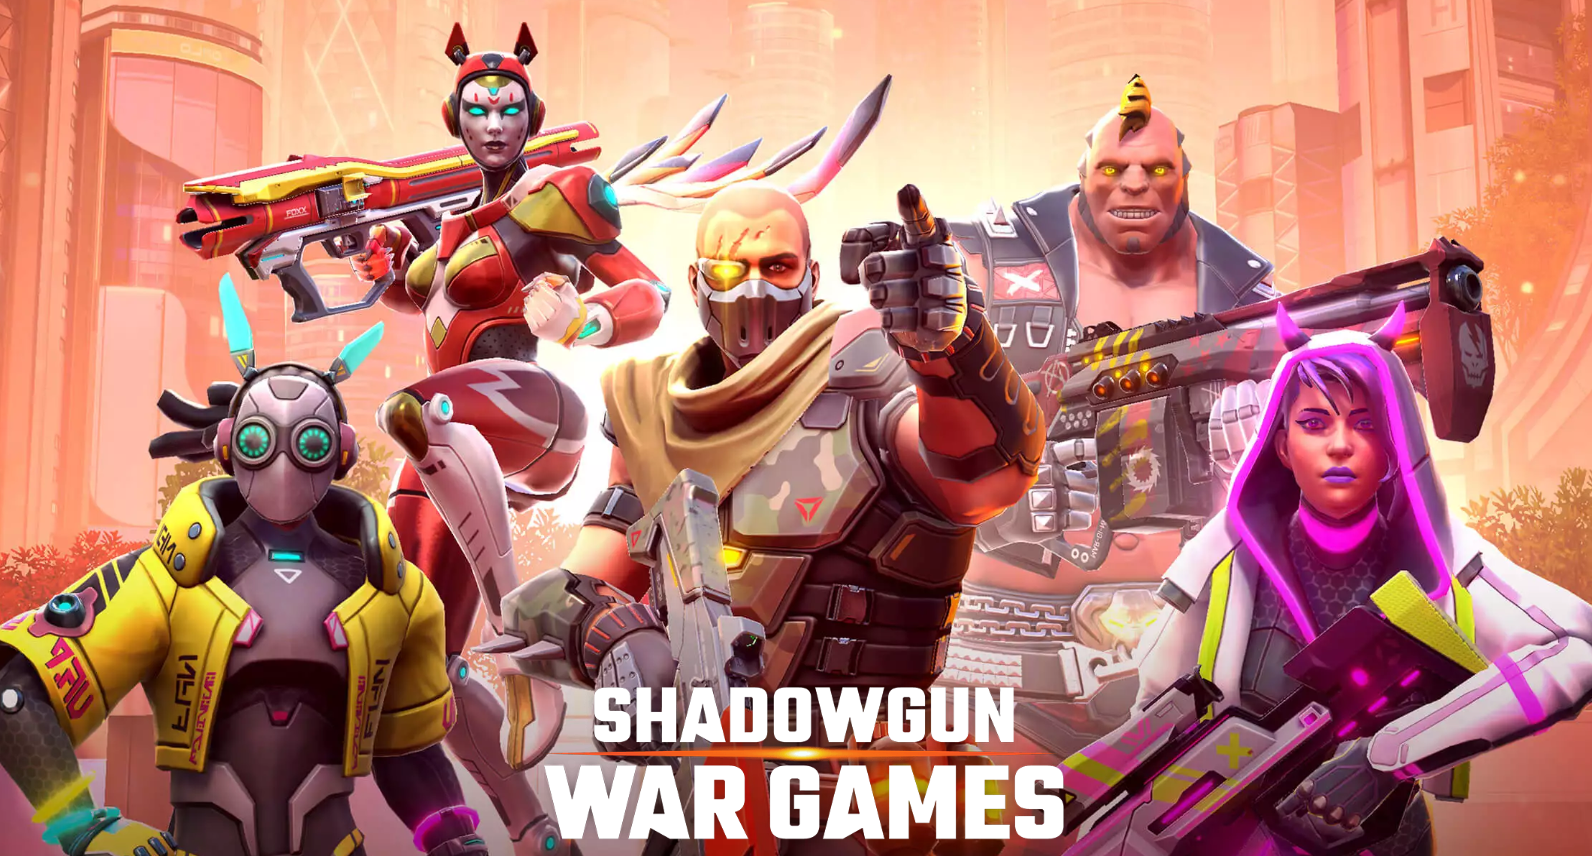 Shadowgun War Games: First Impressions - The Mobile Overwatch? 33